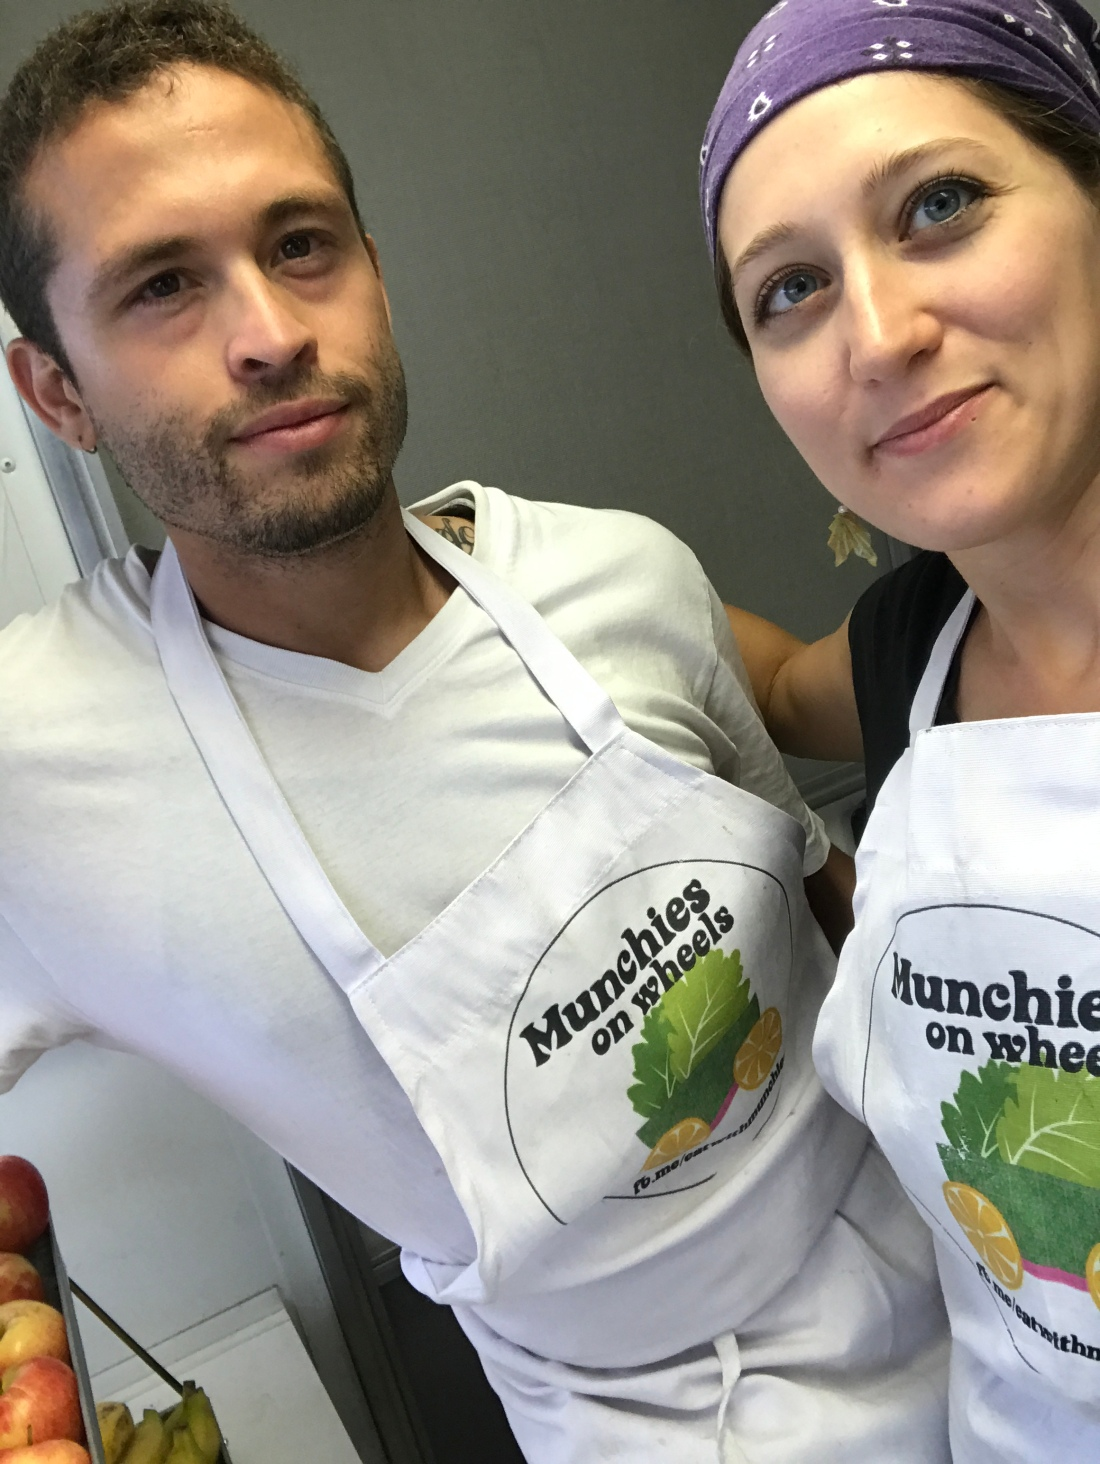 José Mojica and Stacy Mojica stand together wearing Munchies on Wheels aprons.